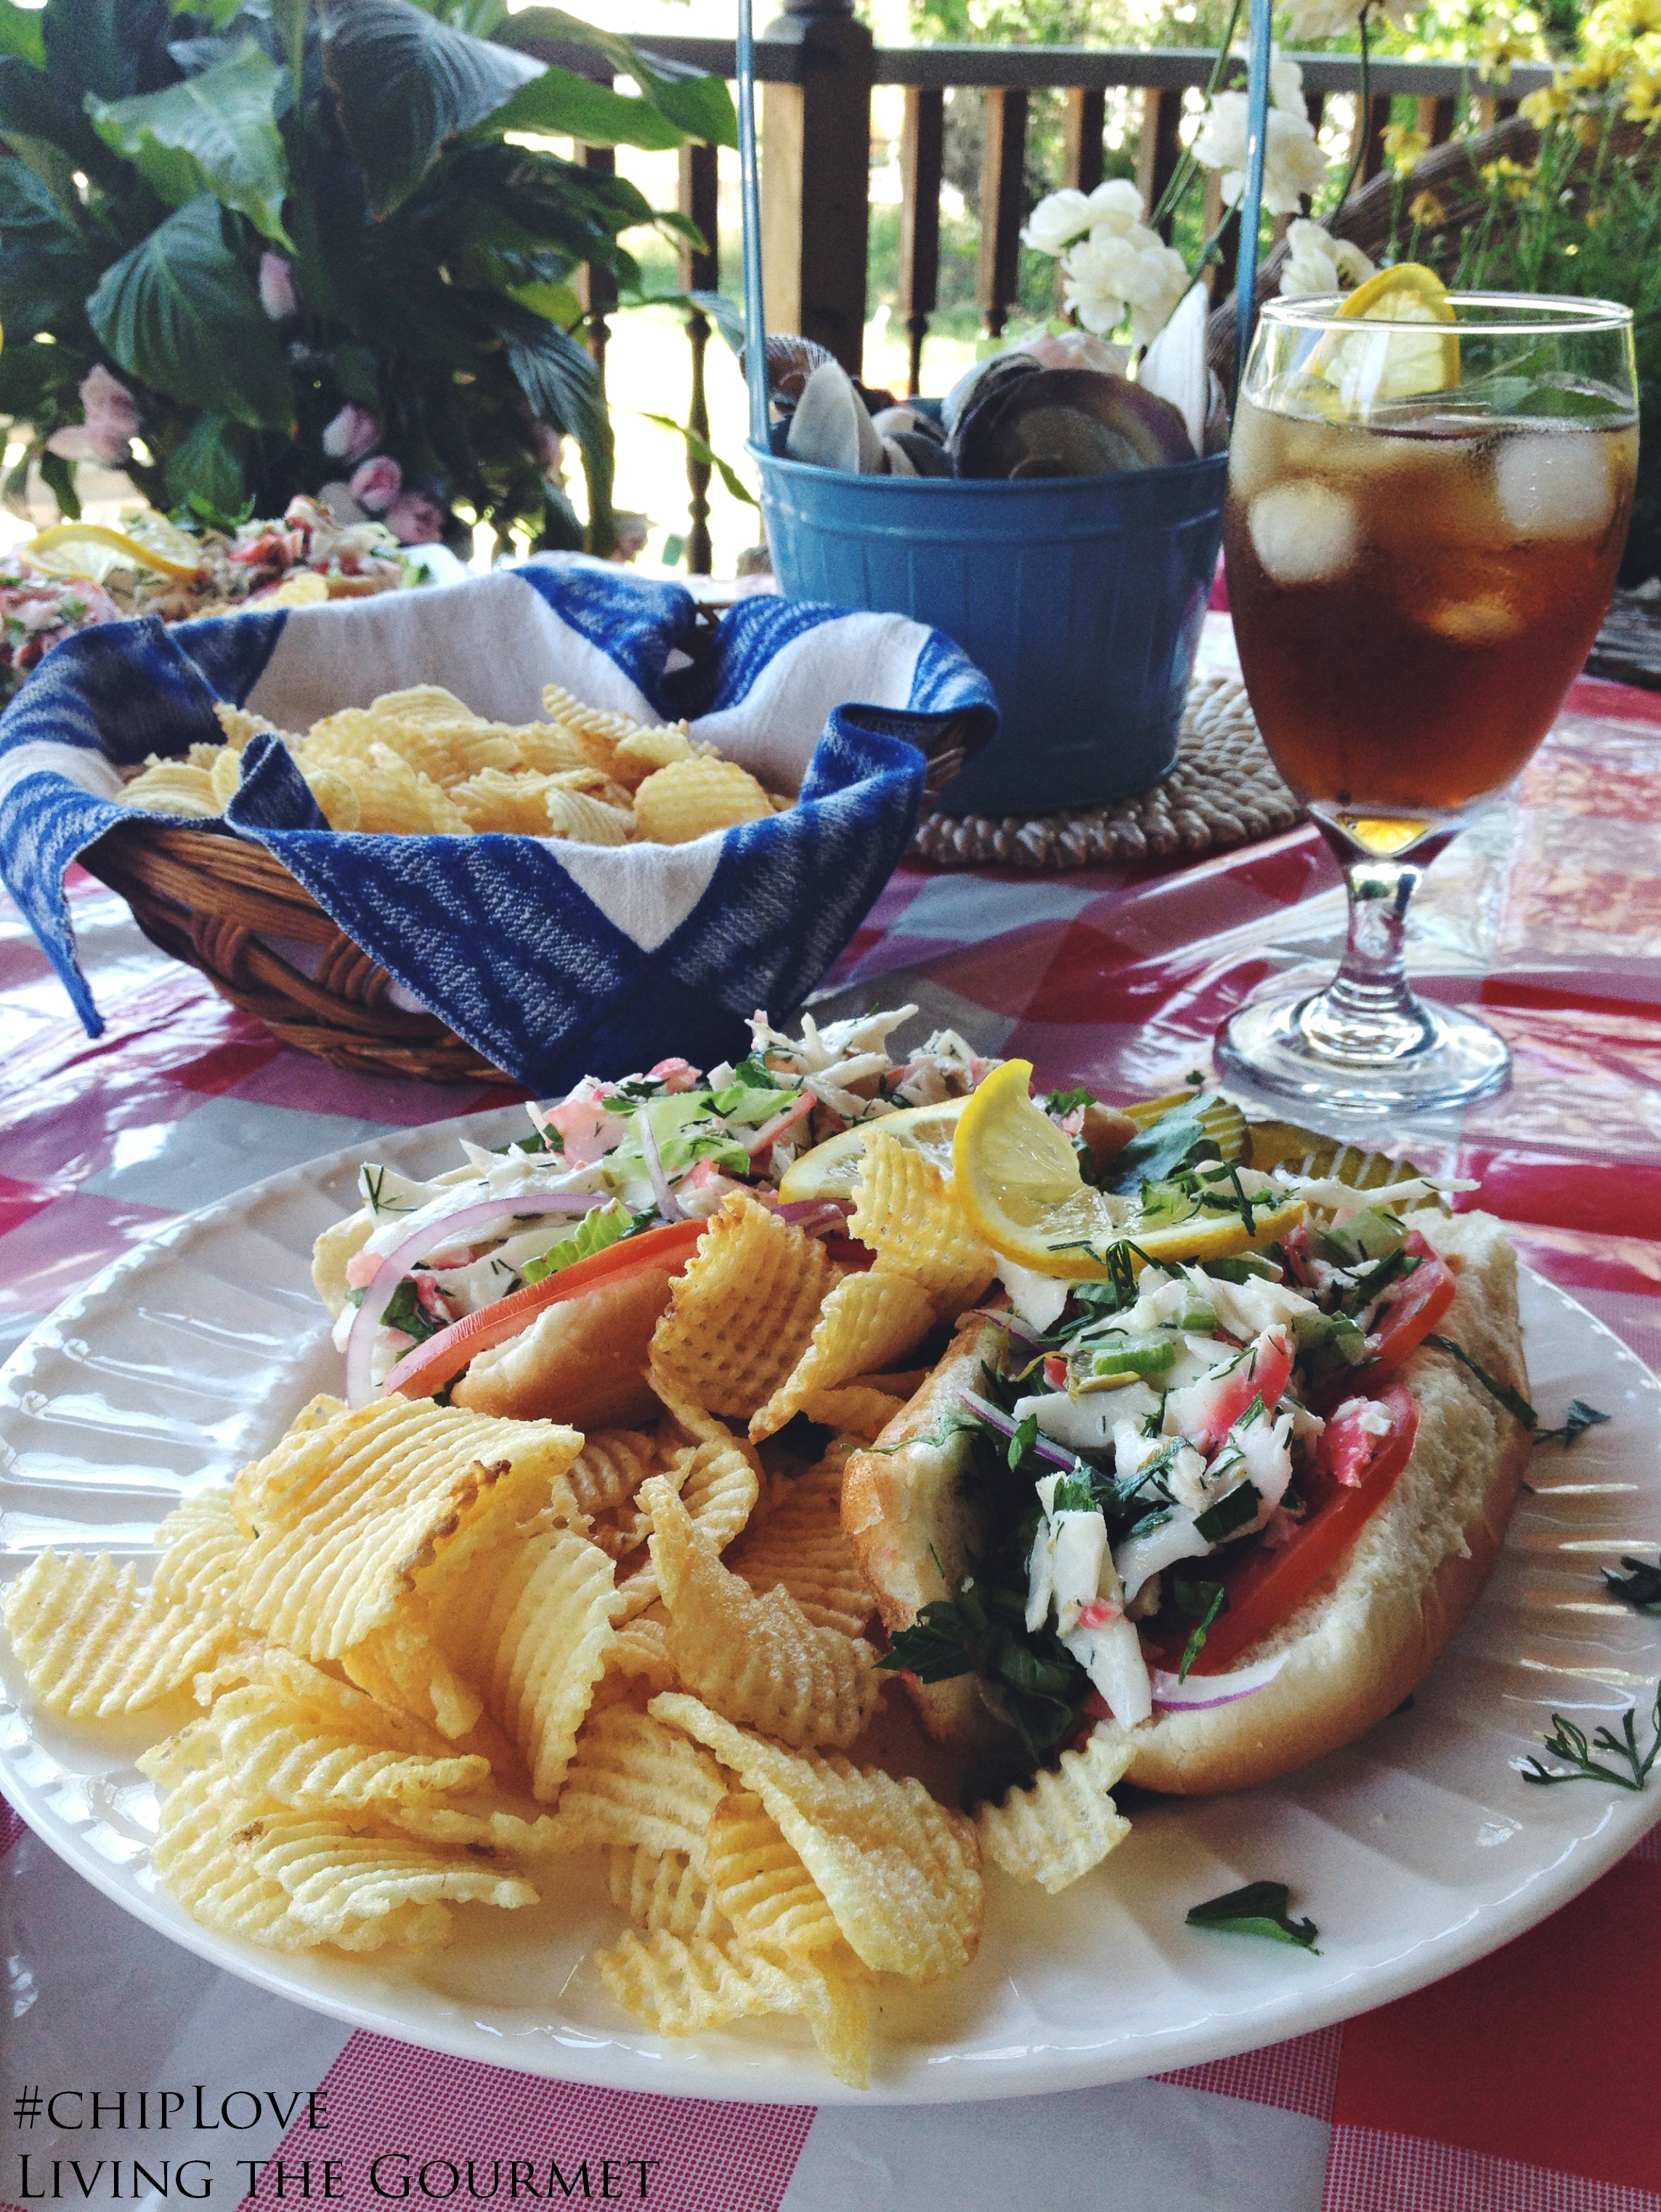 #AD #ChipLove | Living the Gourmet: Crab Salad Roll & Cape Cod Chips